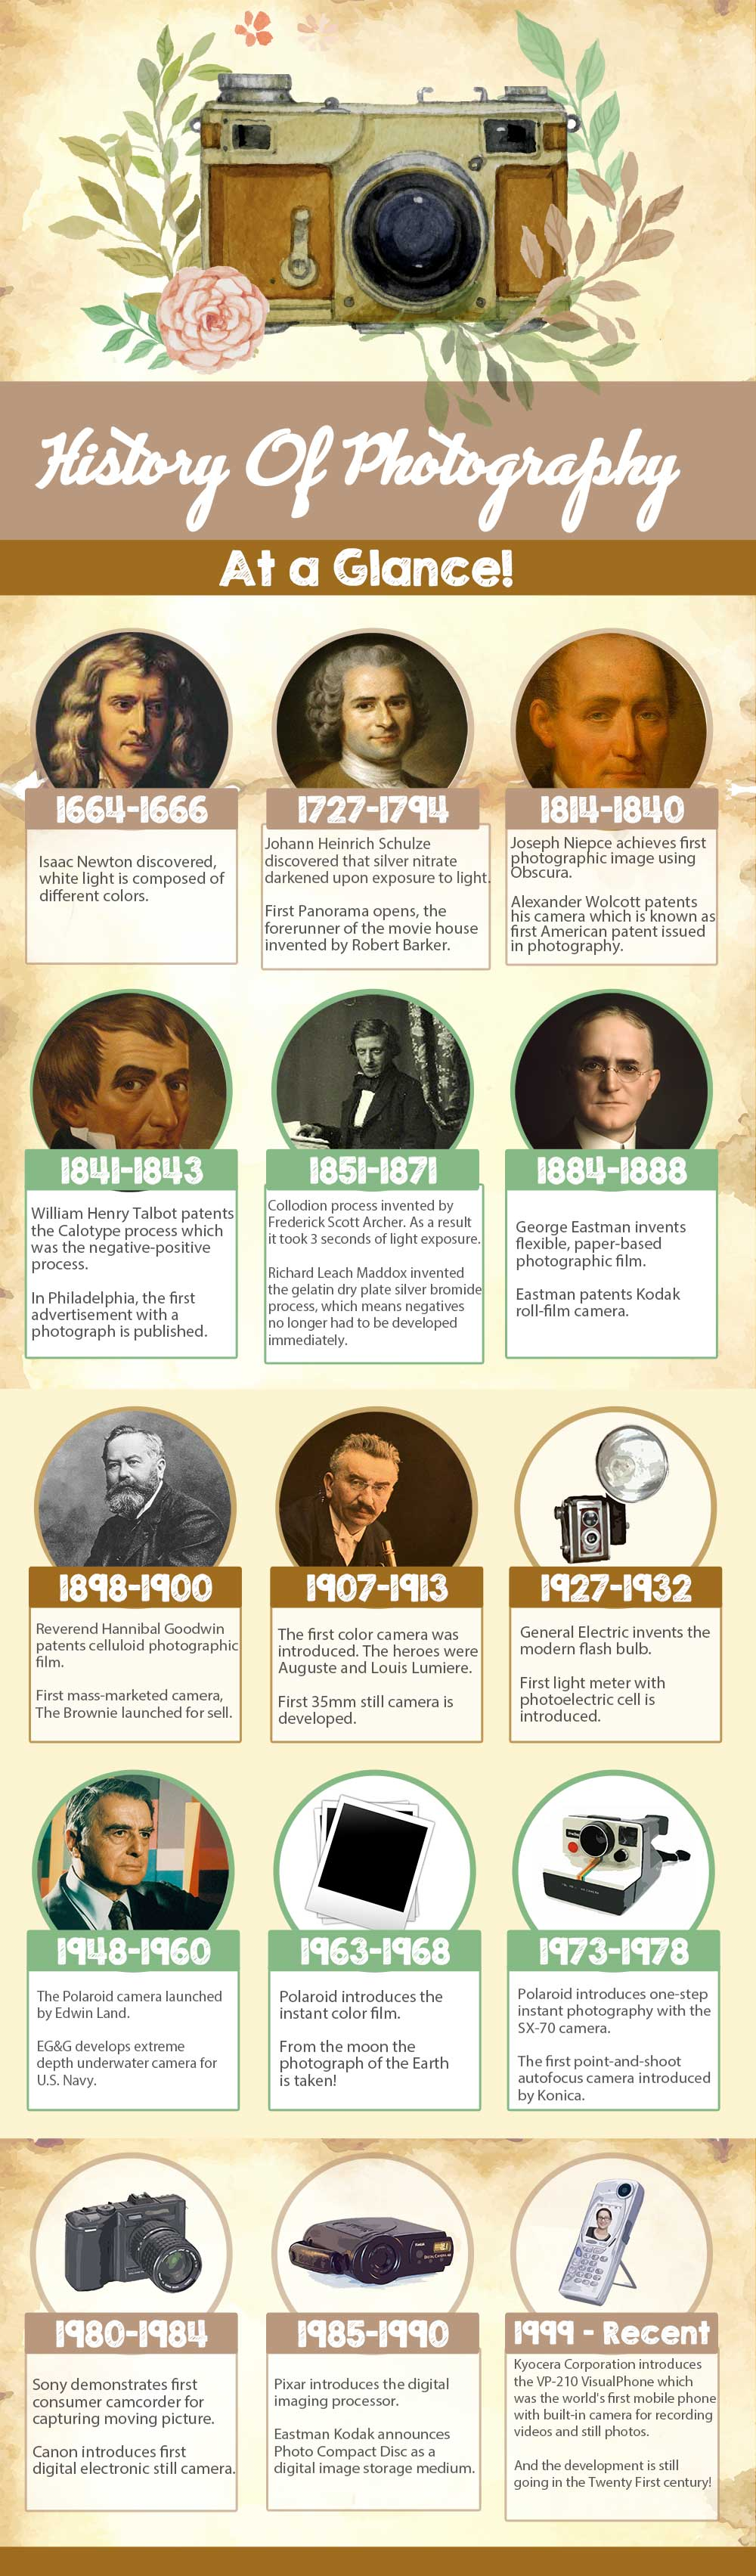 Brief History Of Photography Timeline